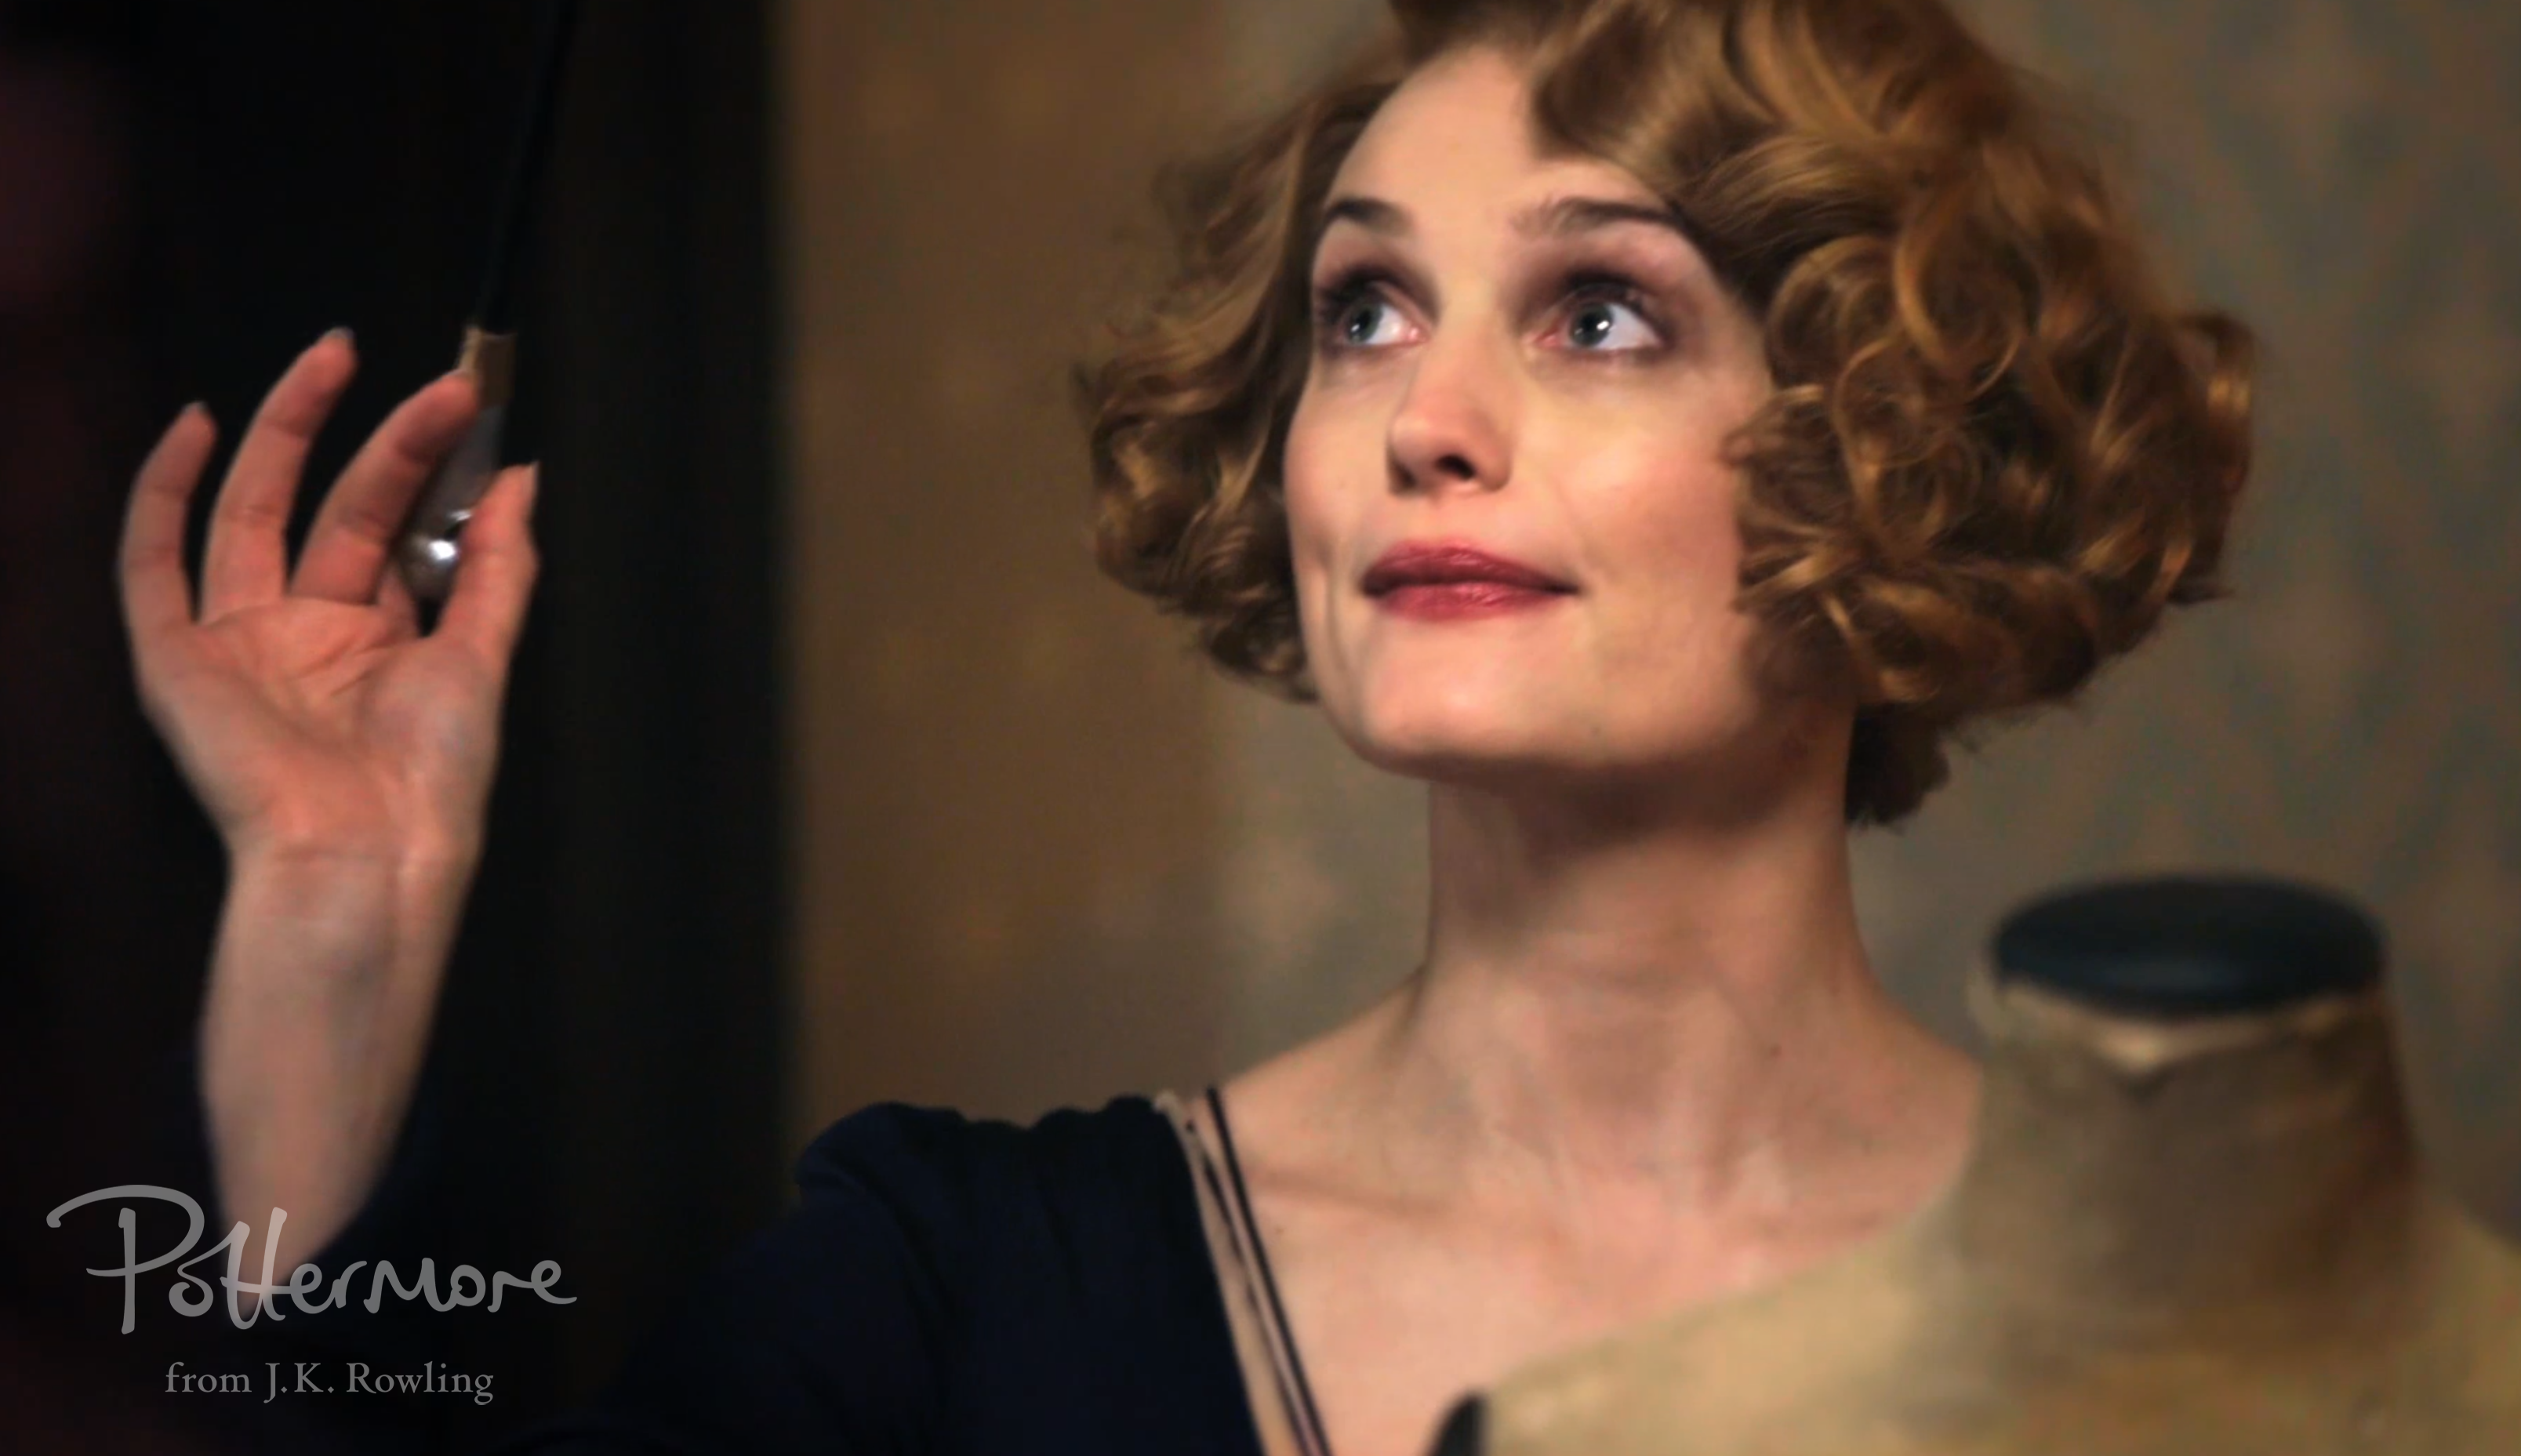 Alison Sudol as Queenie with wand, Celebration video shot